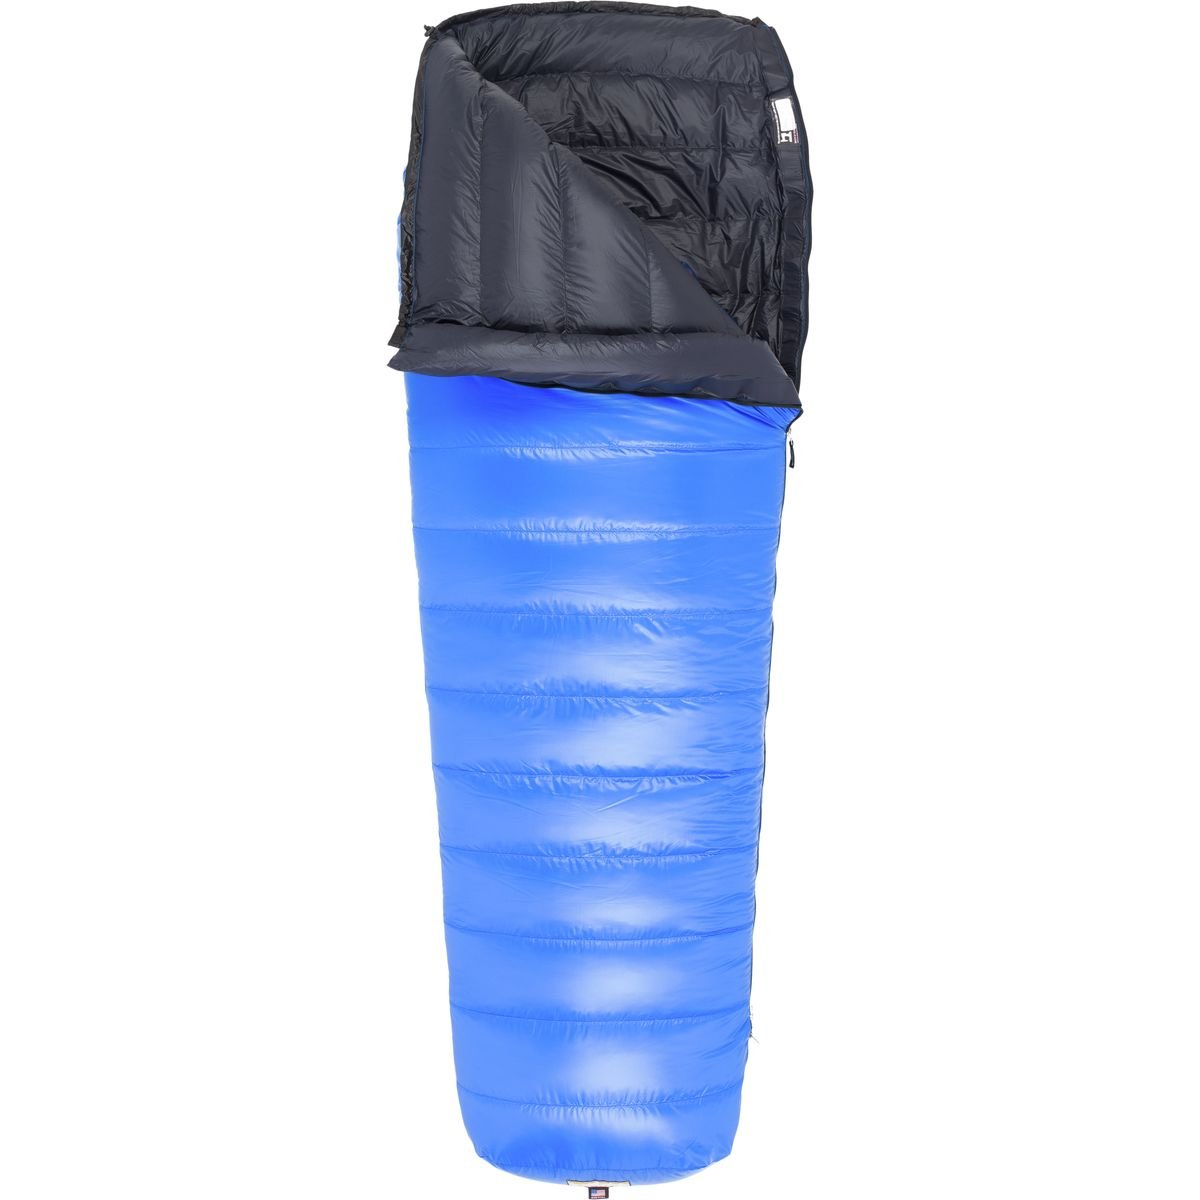 An image related to Western Mountaineering Alder MF Sleeping Bag